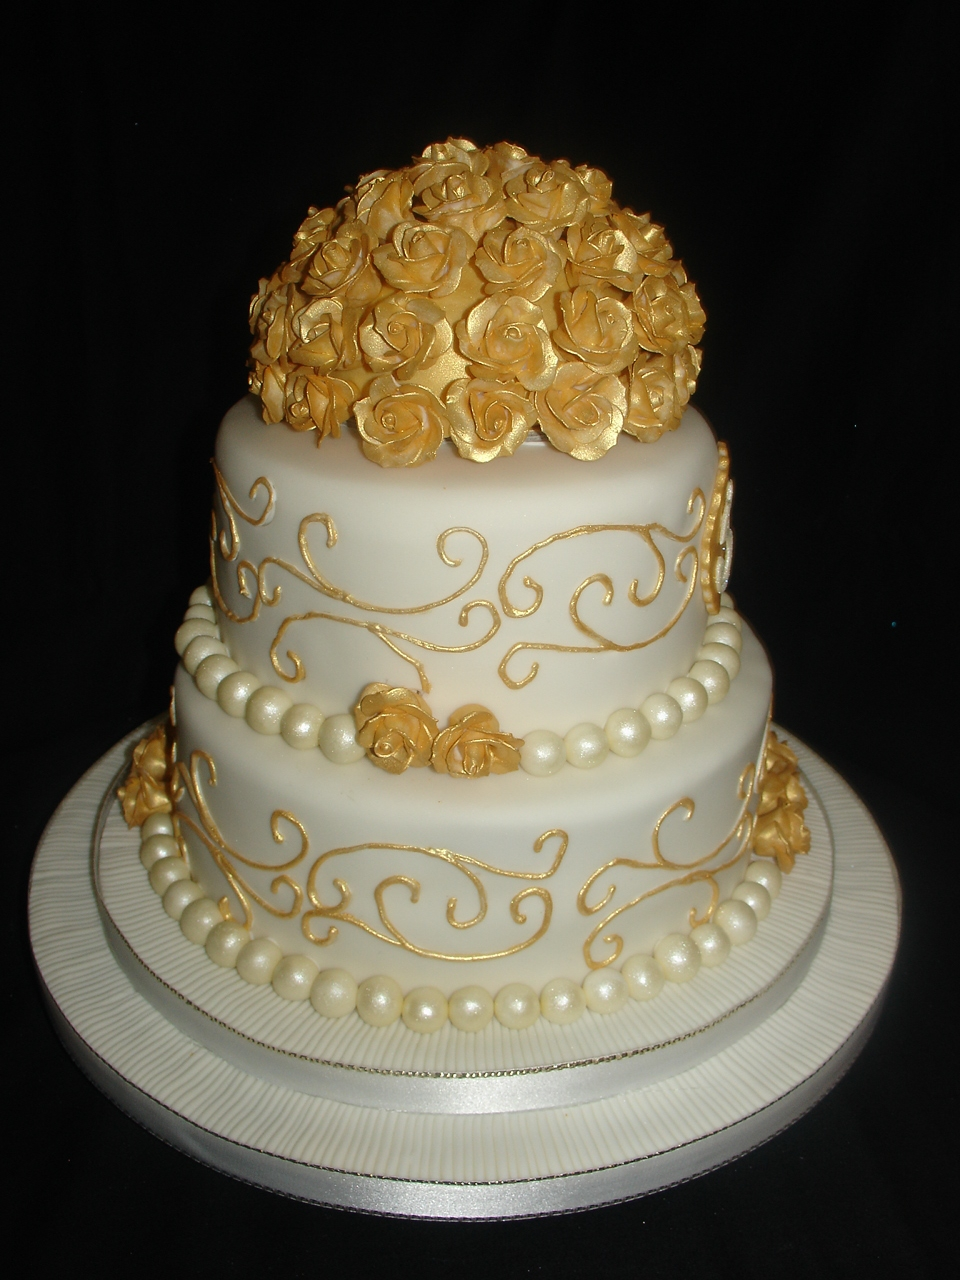 Golden Wedding Anniversary Cakes Pictures